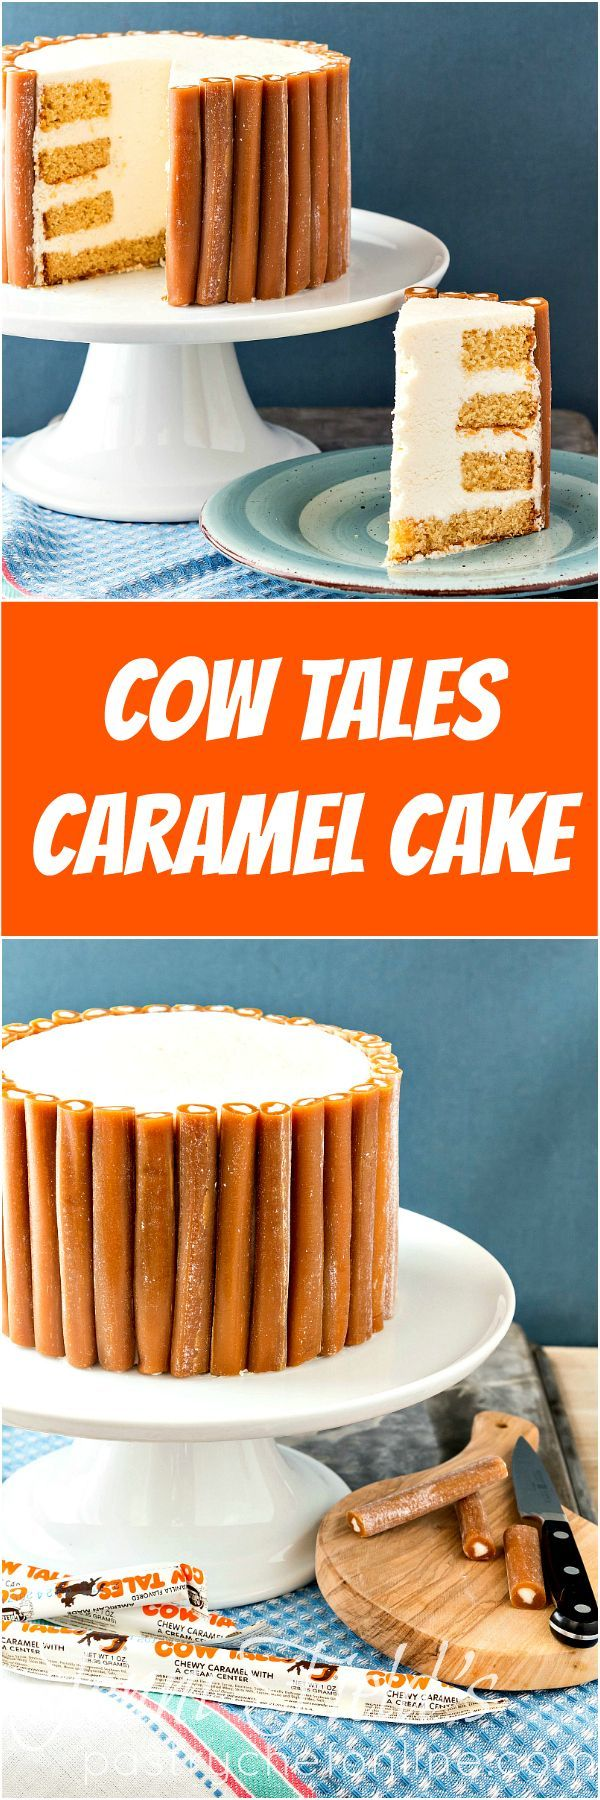 This Cow Tales Caramel Cake is pure decadence. Four layers of caramel cake with cream between the layers and a core of frosting. Like one big Cow Tales candy surrounded by a bunch of little Cow Tales candies. Enjoy in small pieces!   pastrychefonline.co